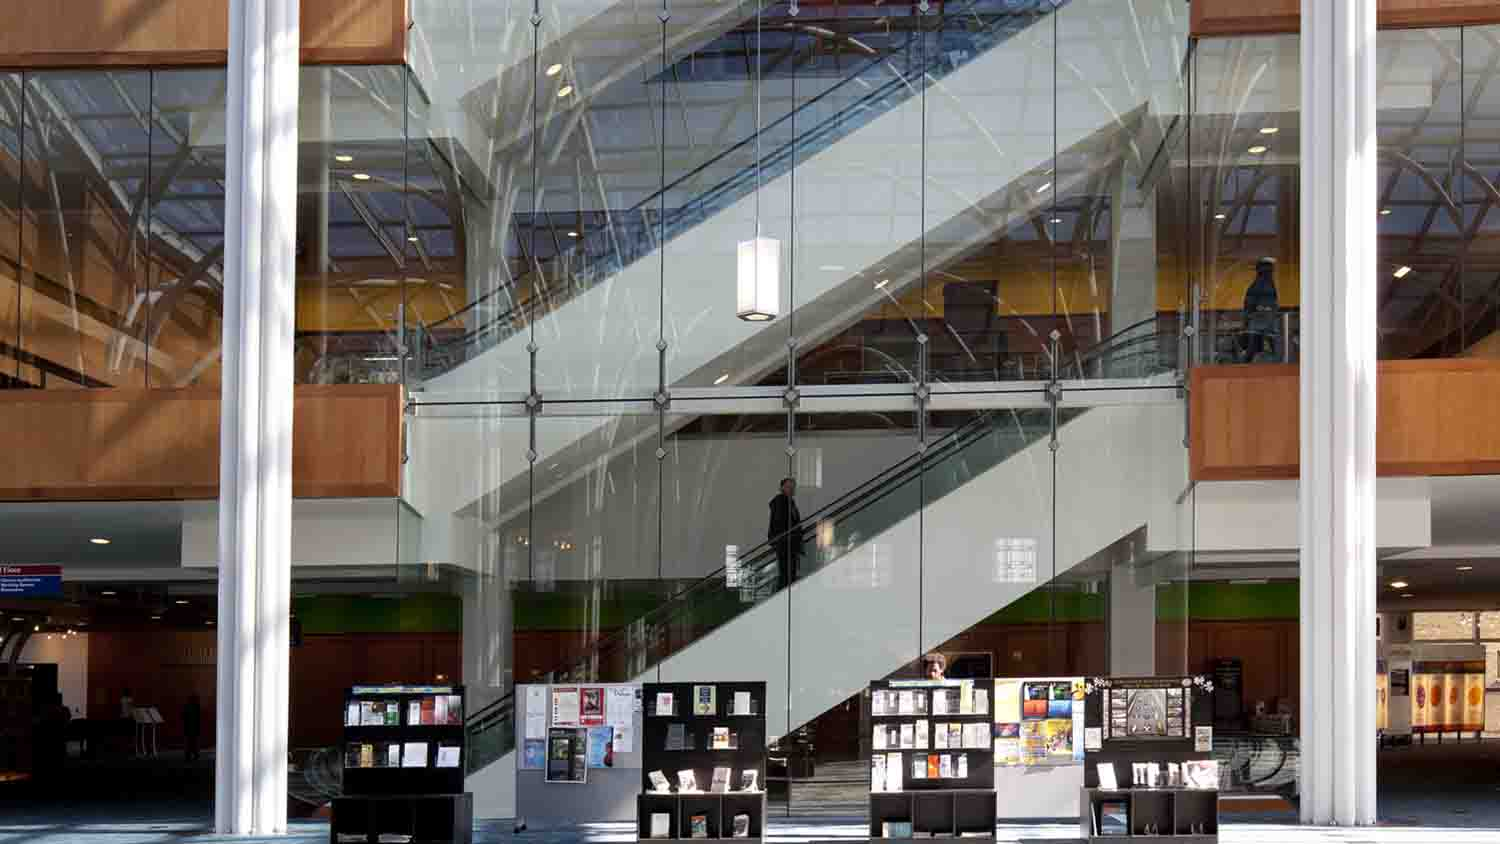 Indianapolis Public Library - Central Library 4